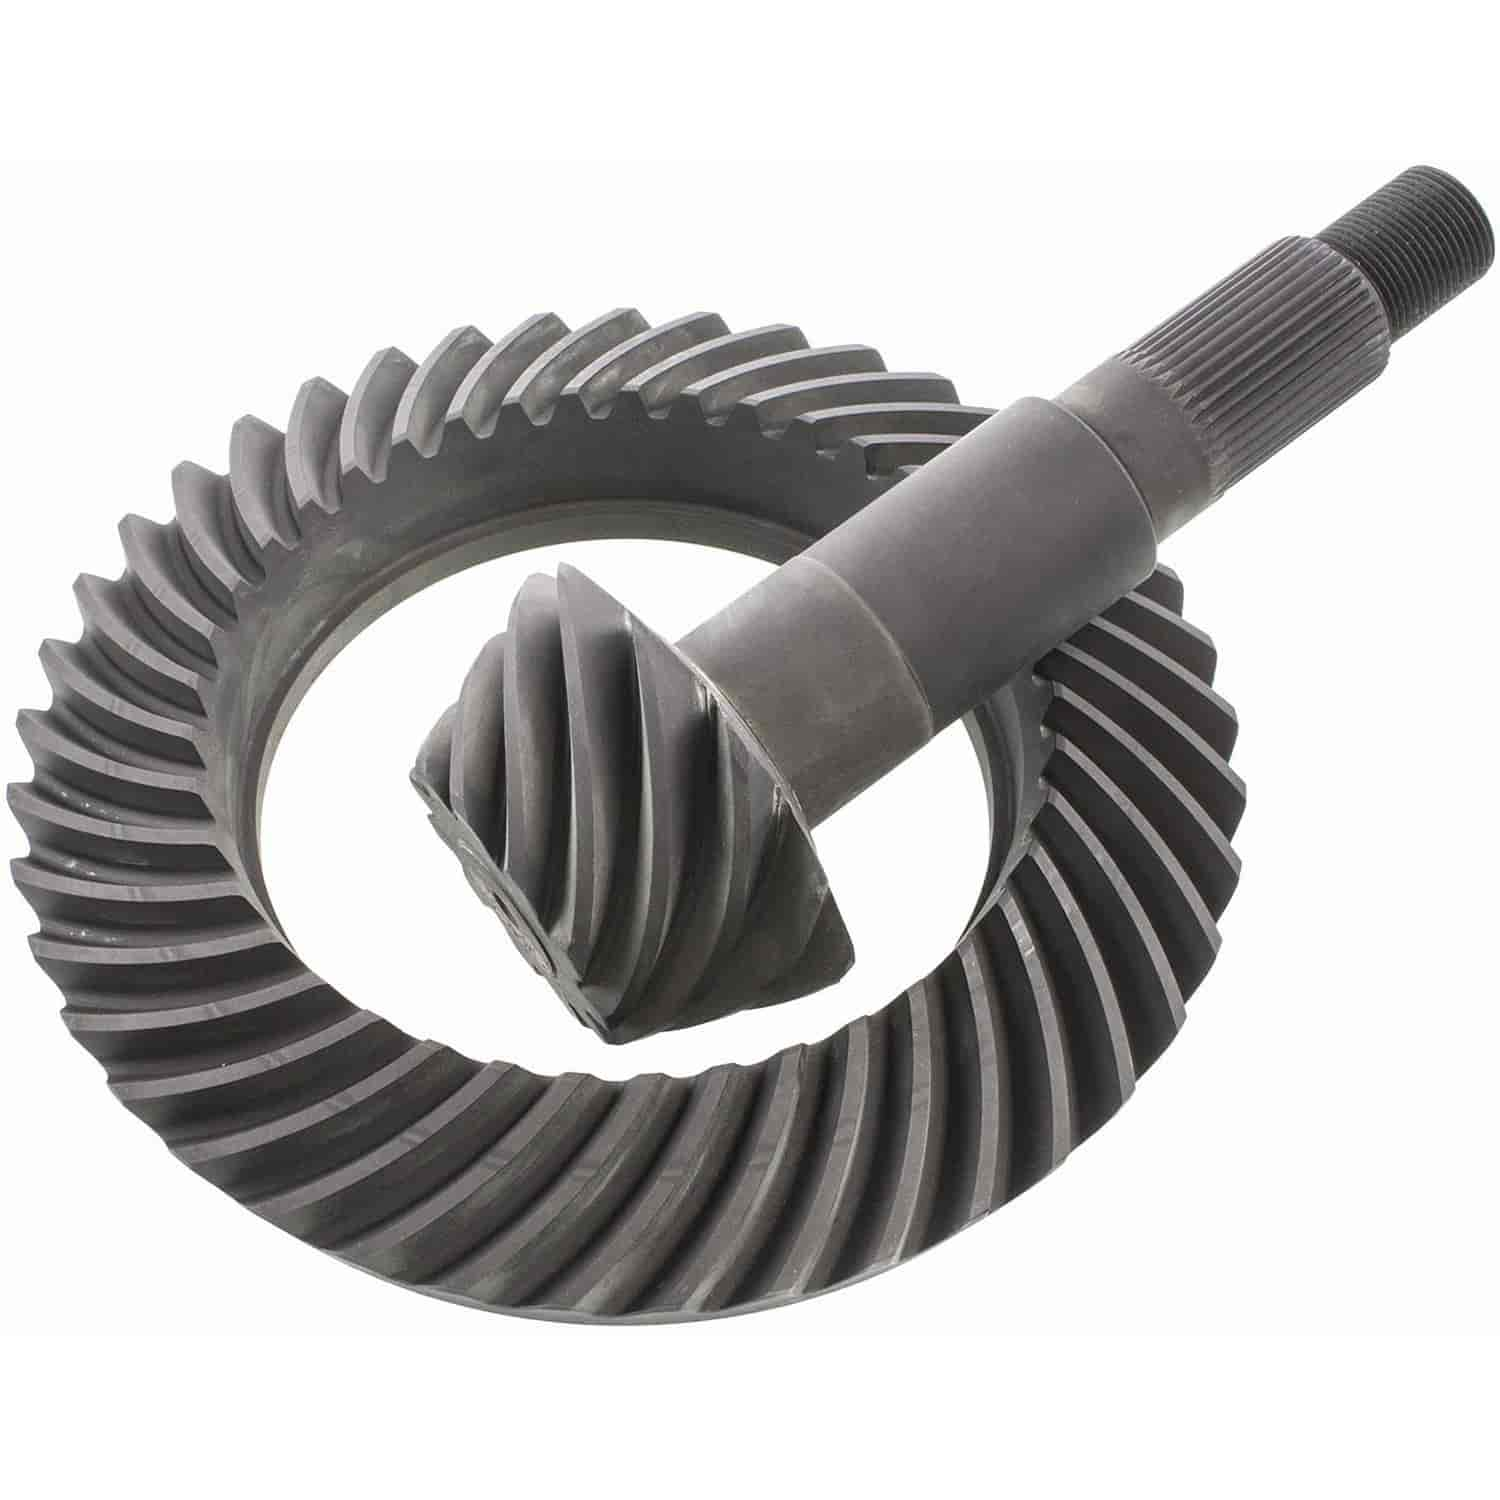 Richmond Gear 49-0158-1 - Richmond Gear Dana Ring & Pinion Sets